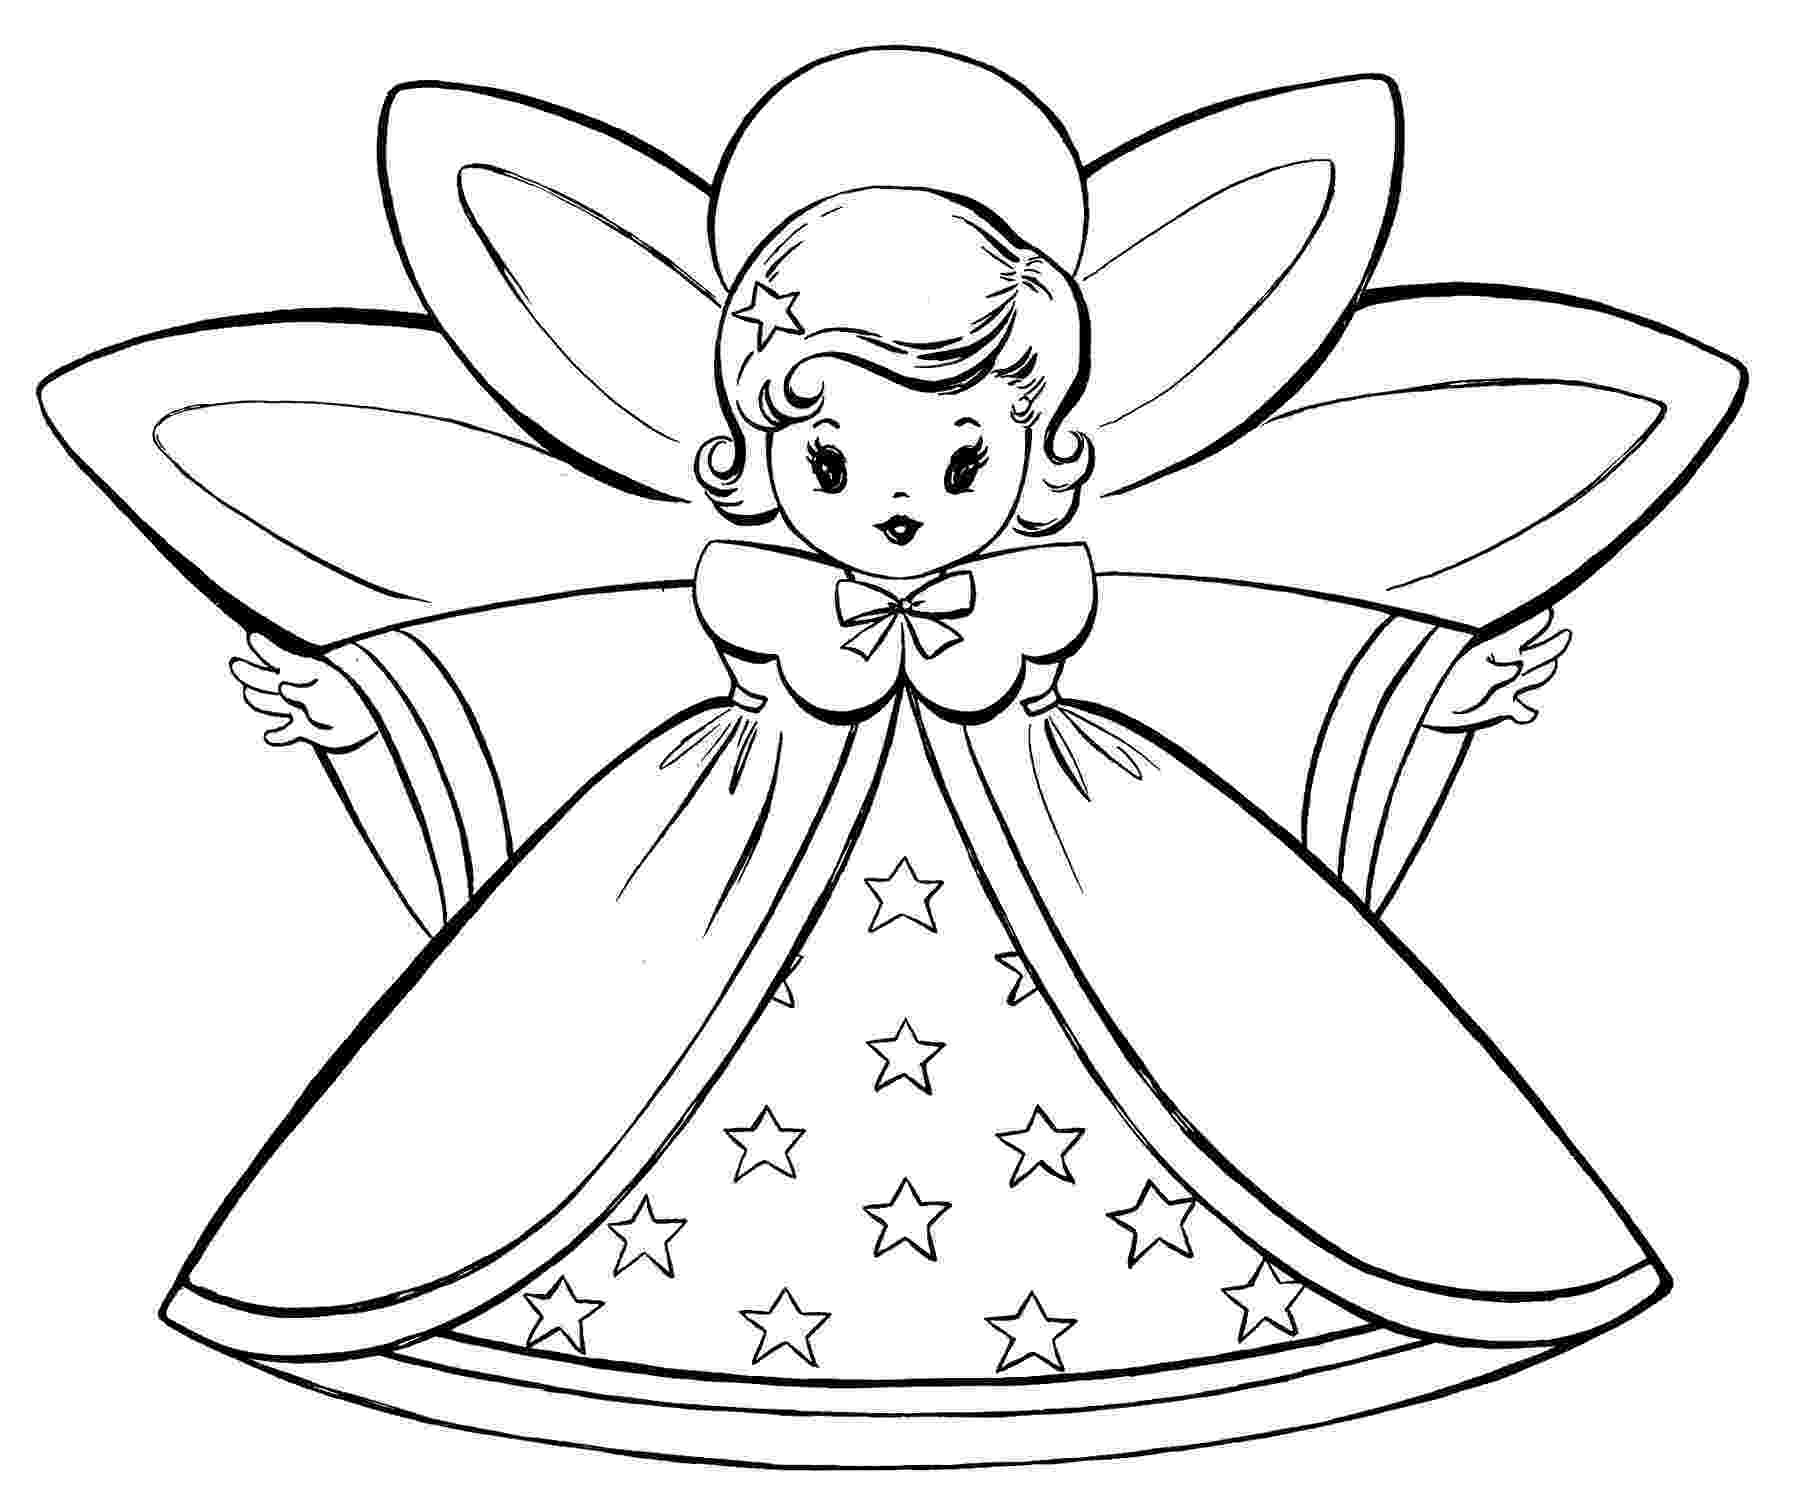 coloring pages for christmas free printable christmas coloring pages 2010 christmas pages printable for coloring free